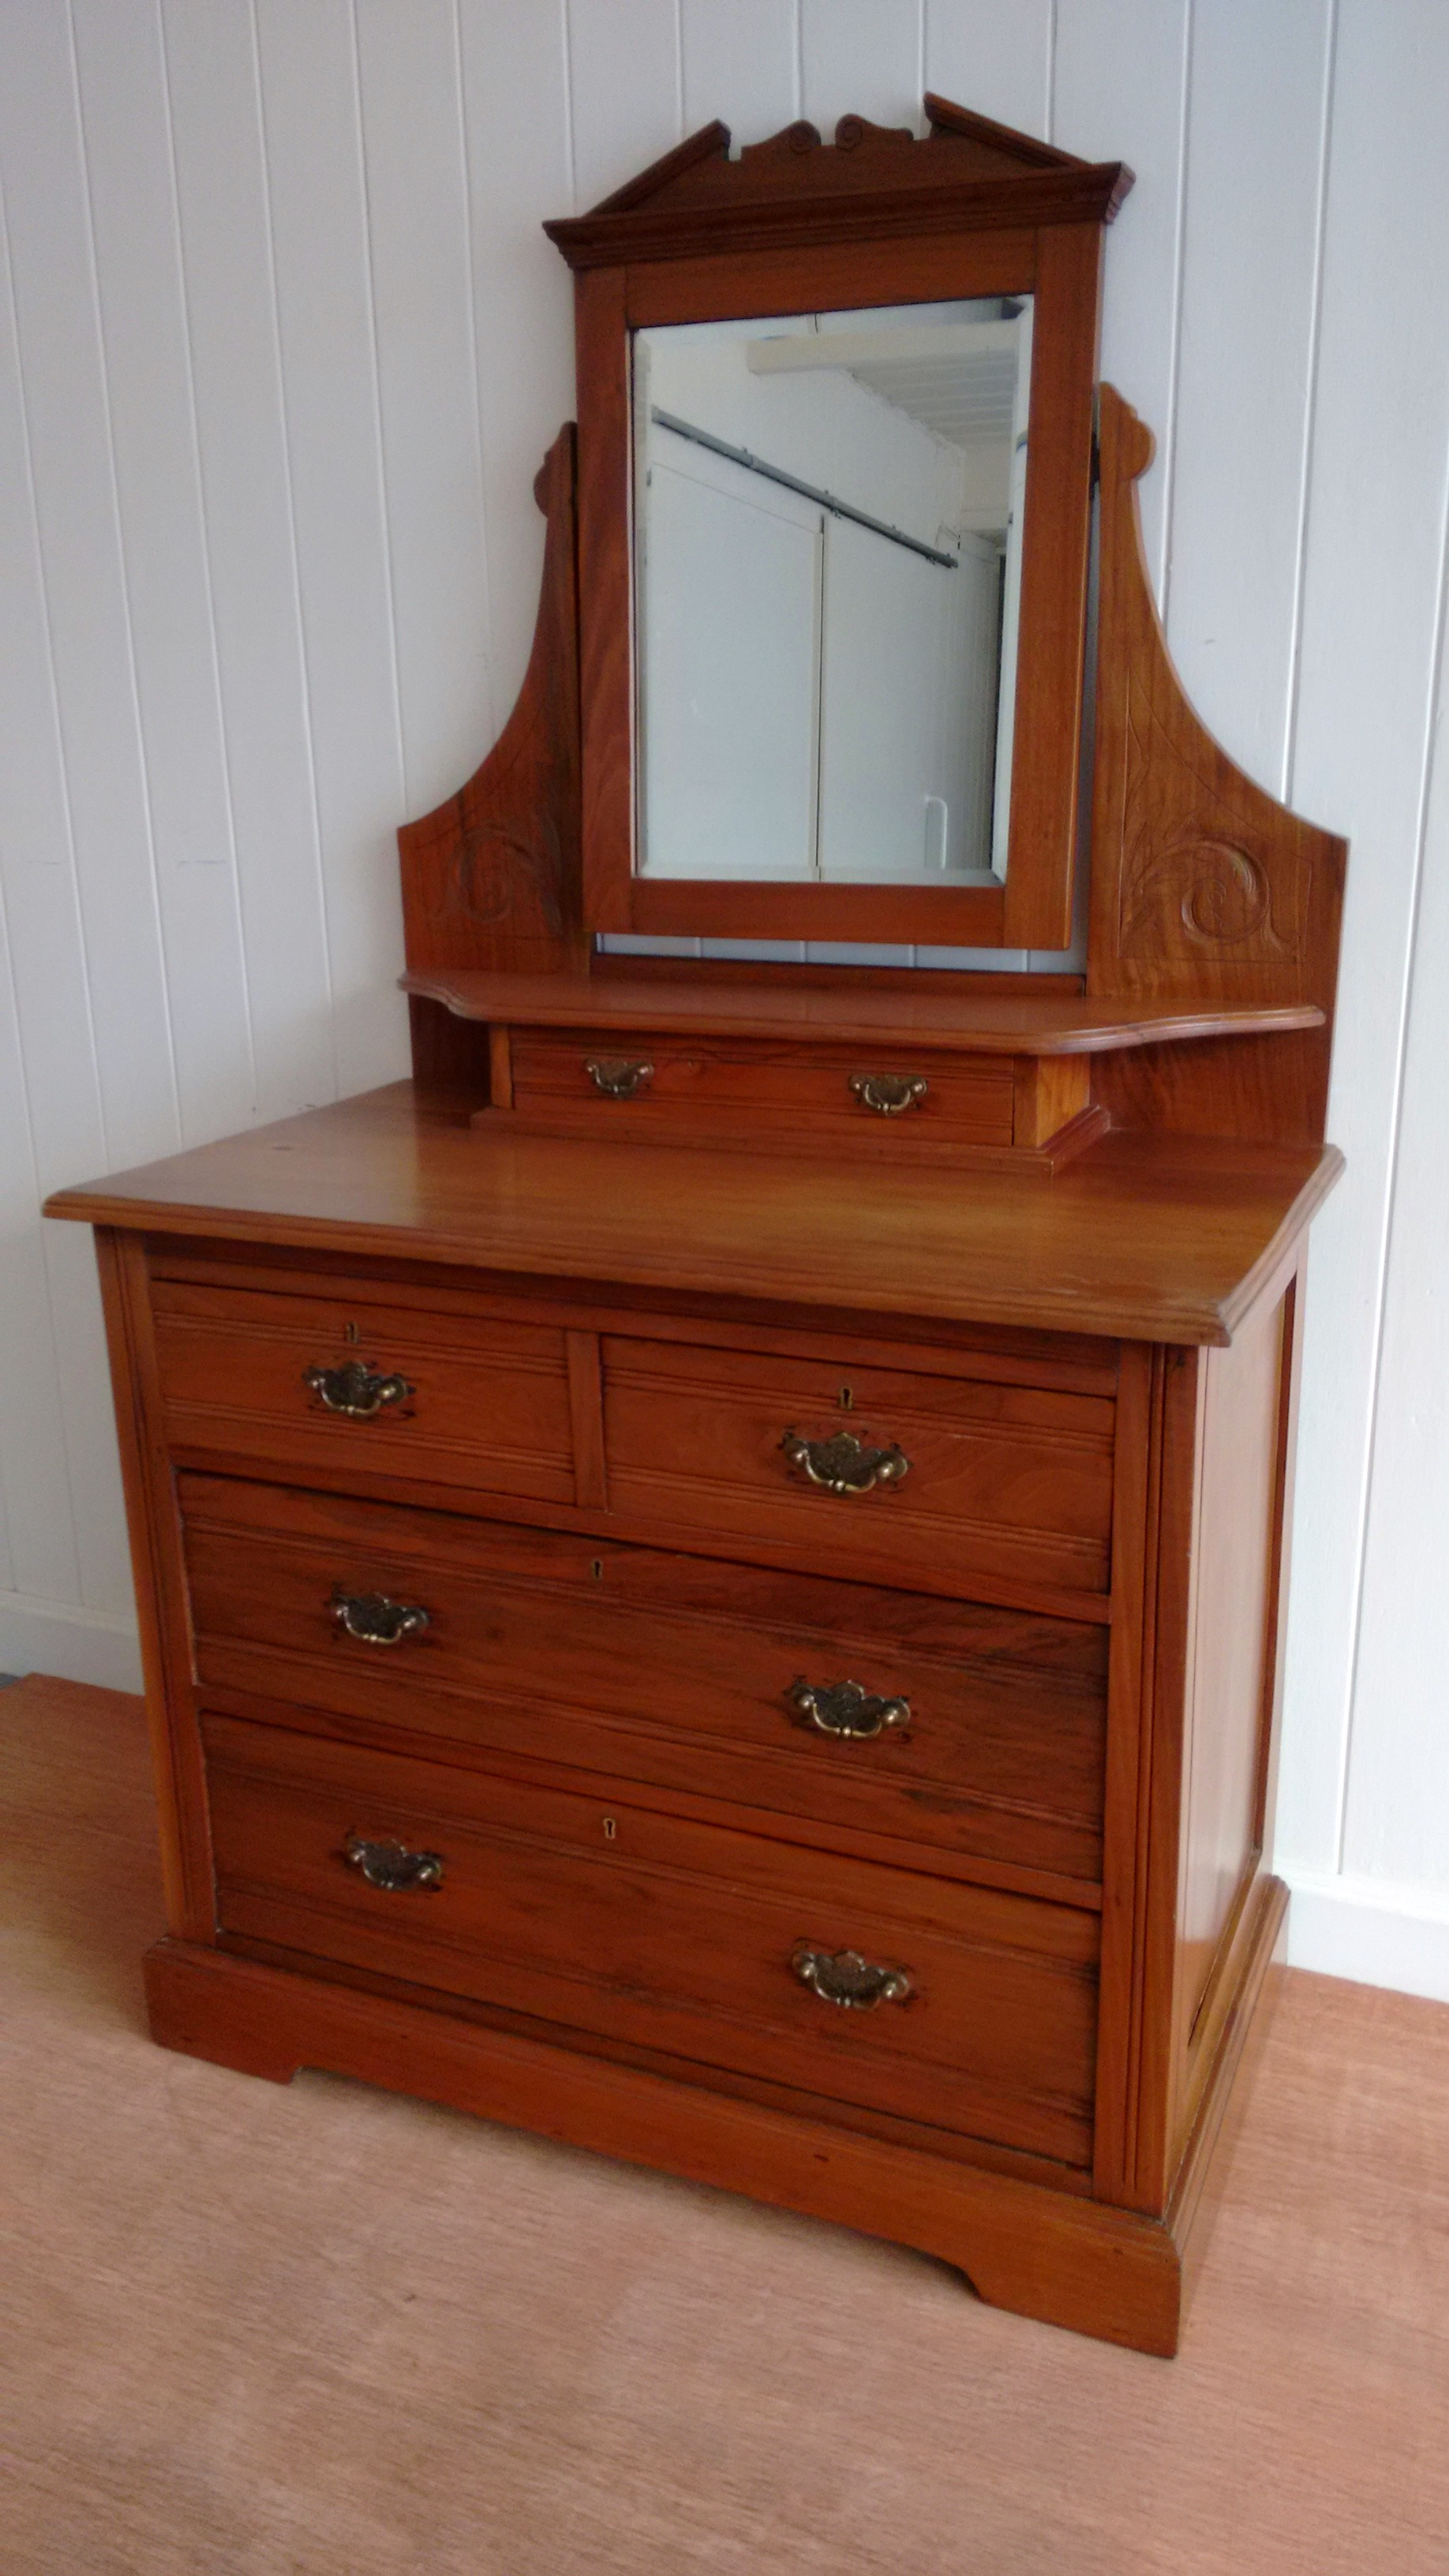 Furniture for sale workshop for Furniture keighley